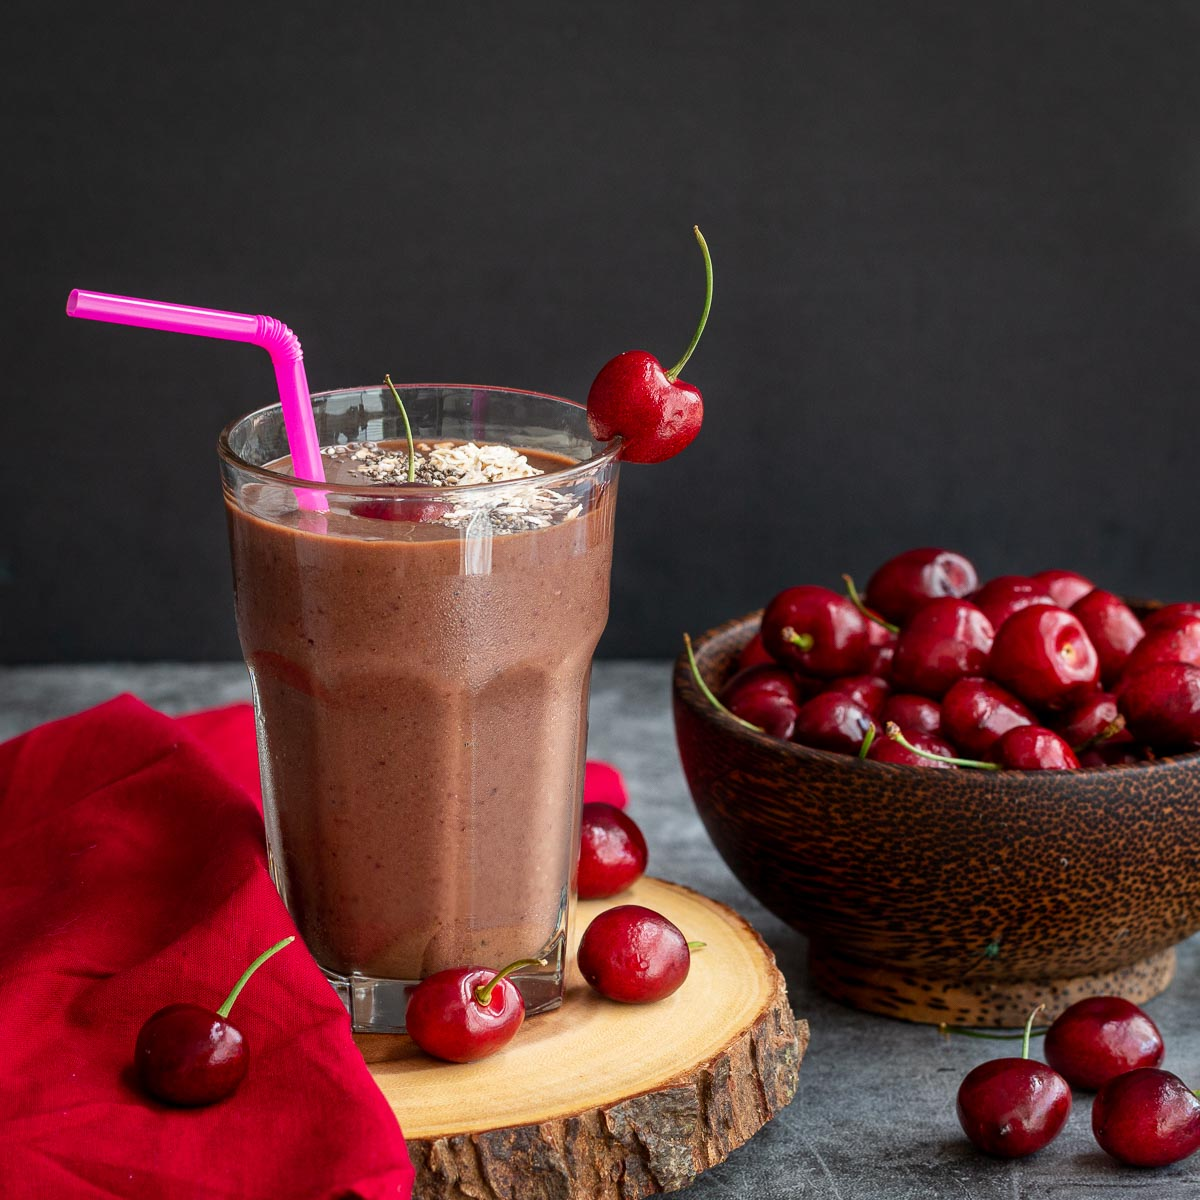 Mexican chocolate cherry smoothie on a wooden serving platter garnished with cherries.